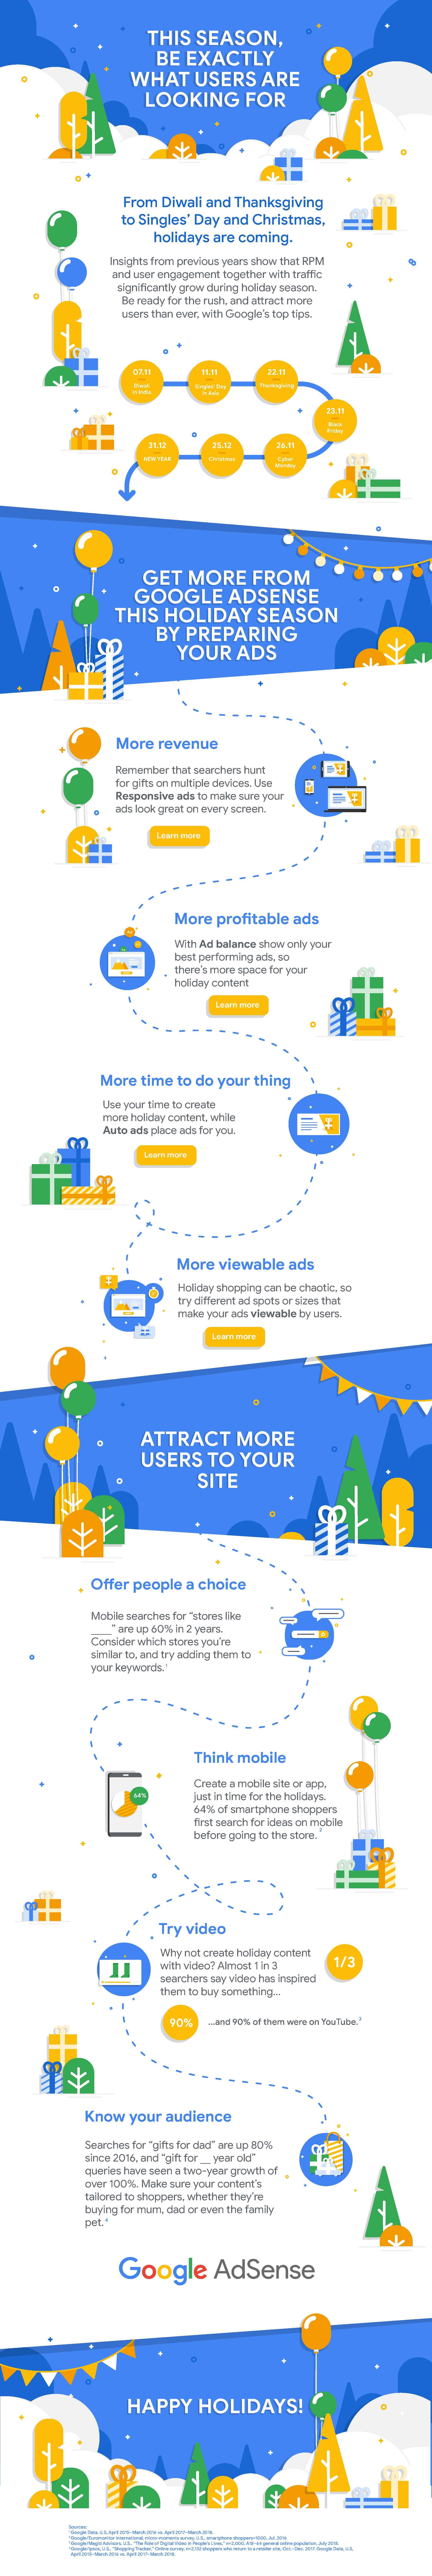 Online Ad Tips for the Holiday Season